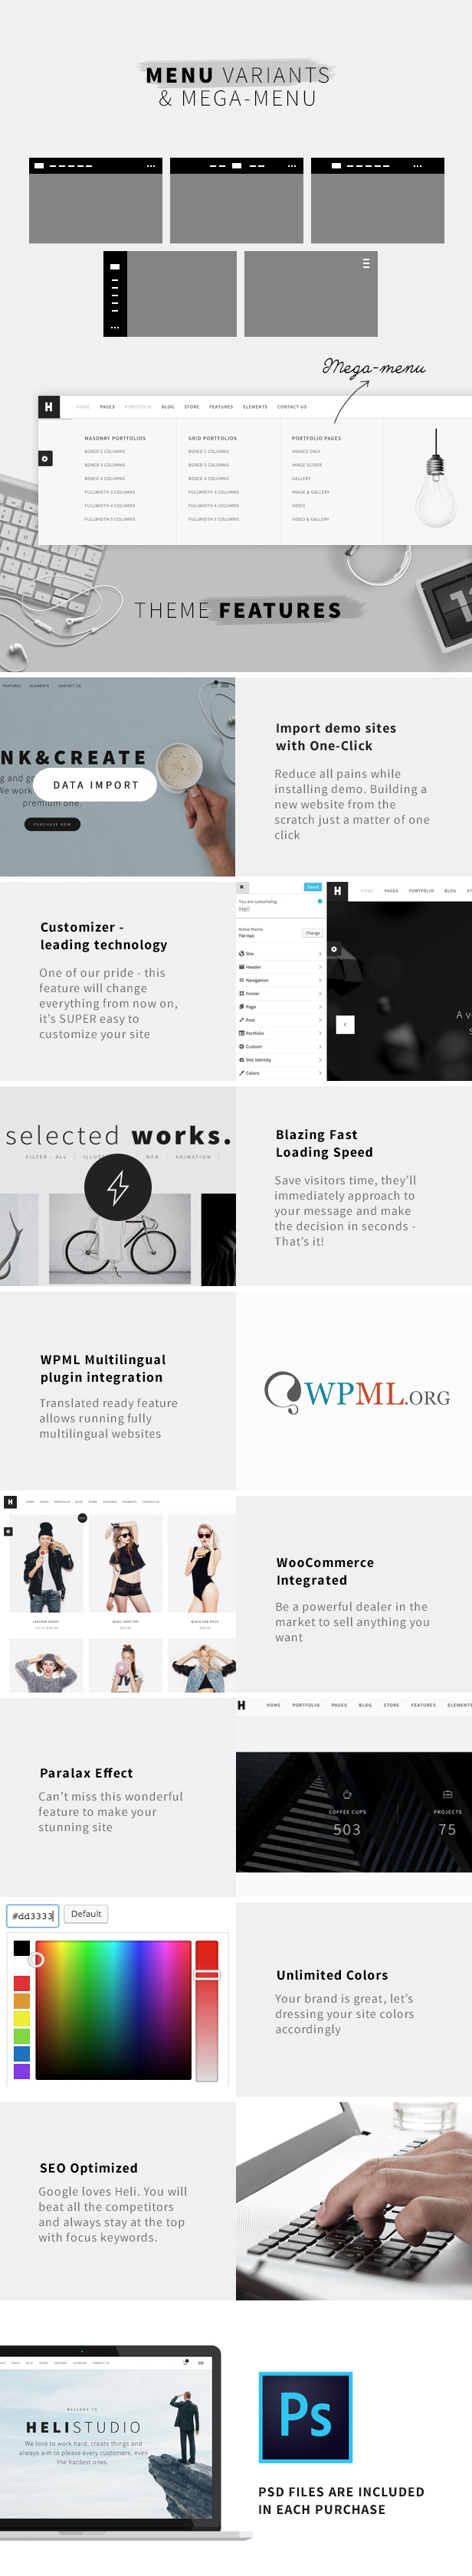 Minimal Creative Black and White WordPress Theme - Various layouts of black n white theme like Heli